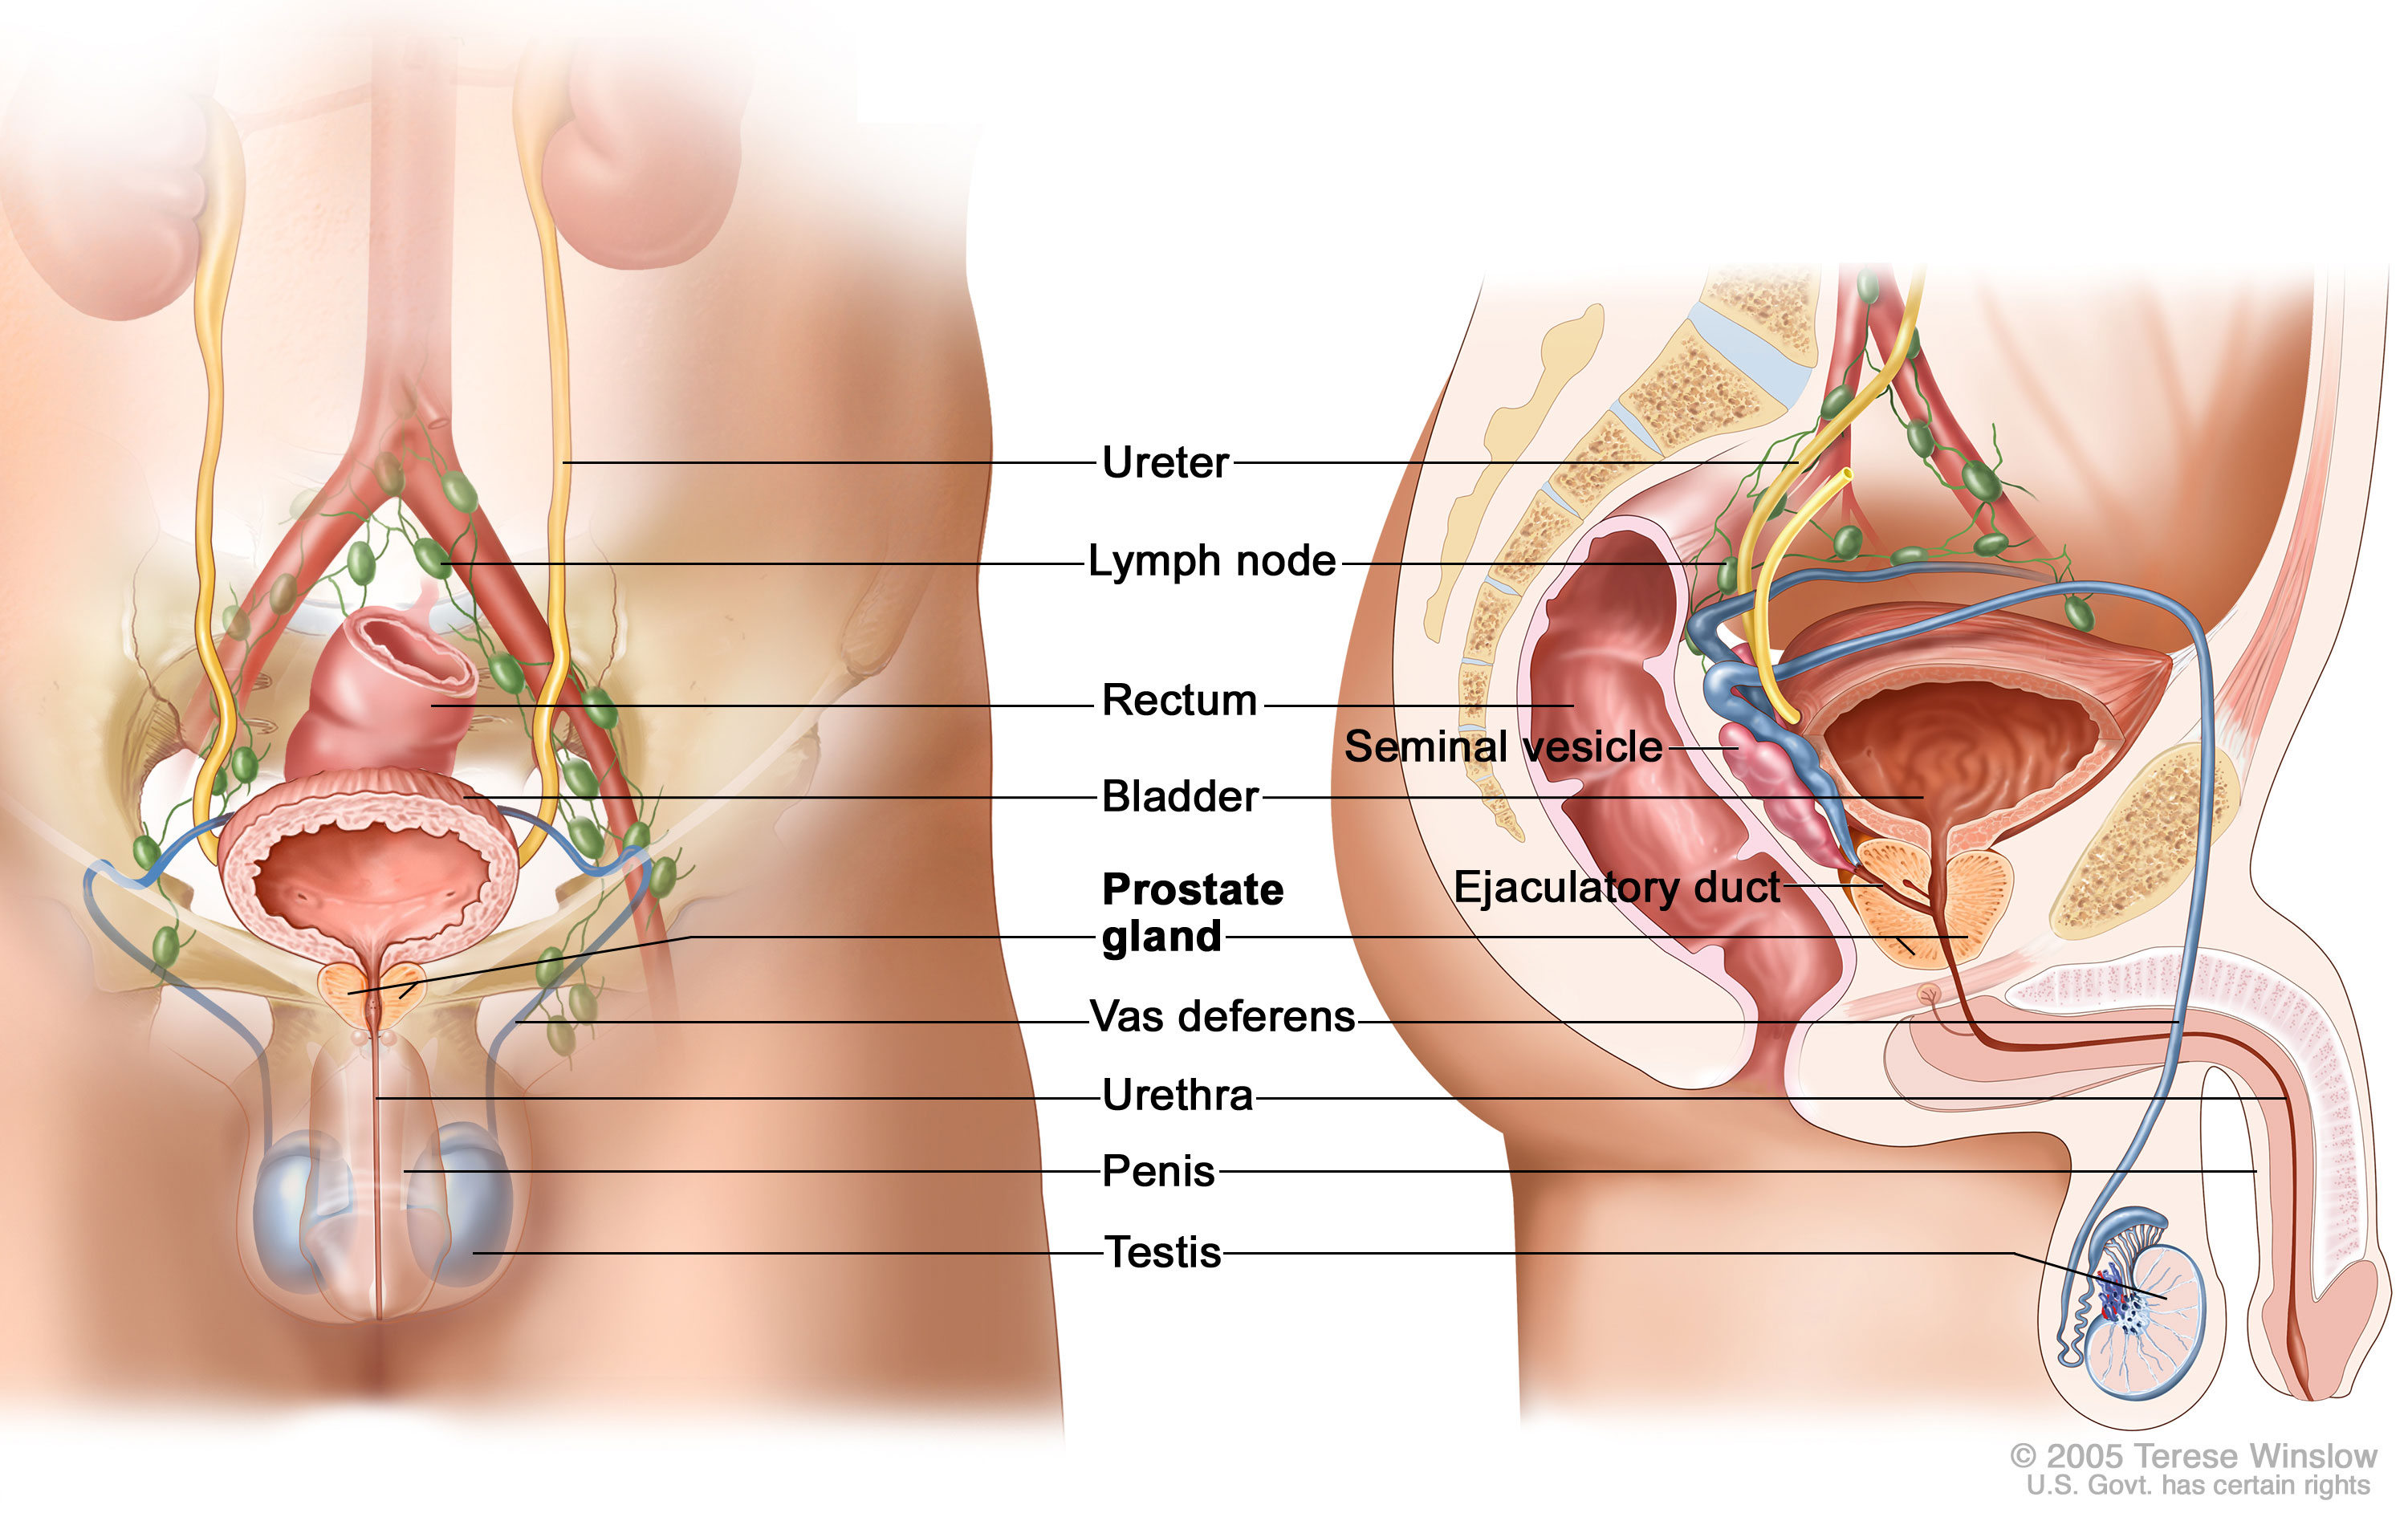 465 0 Testes Definition Testes Are The Glands In The Male Body That